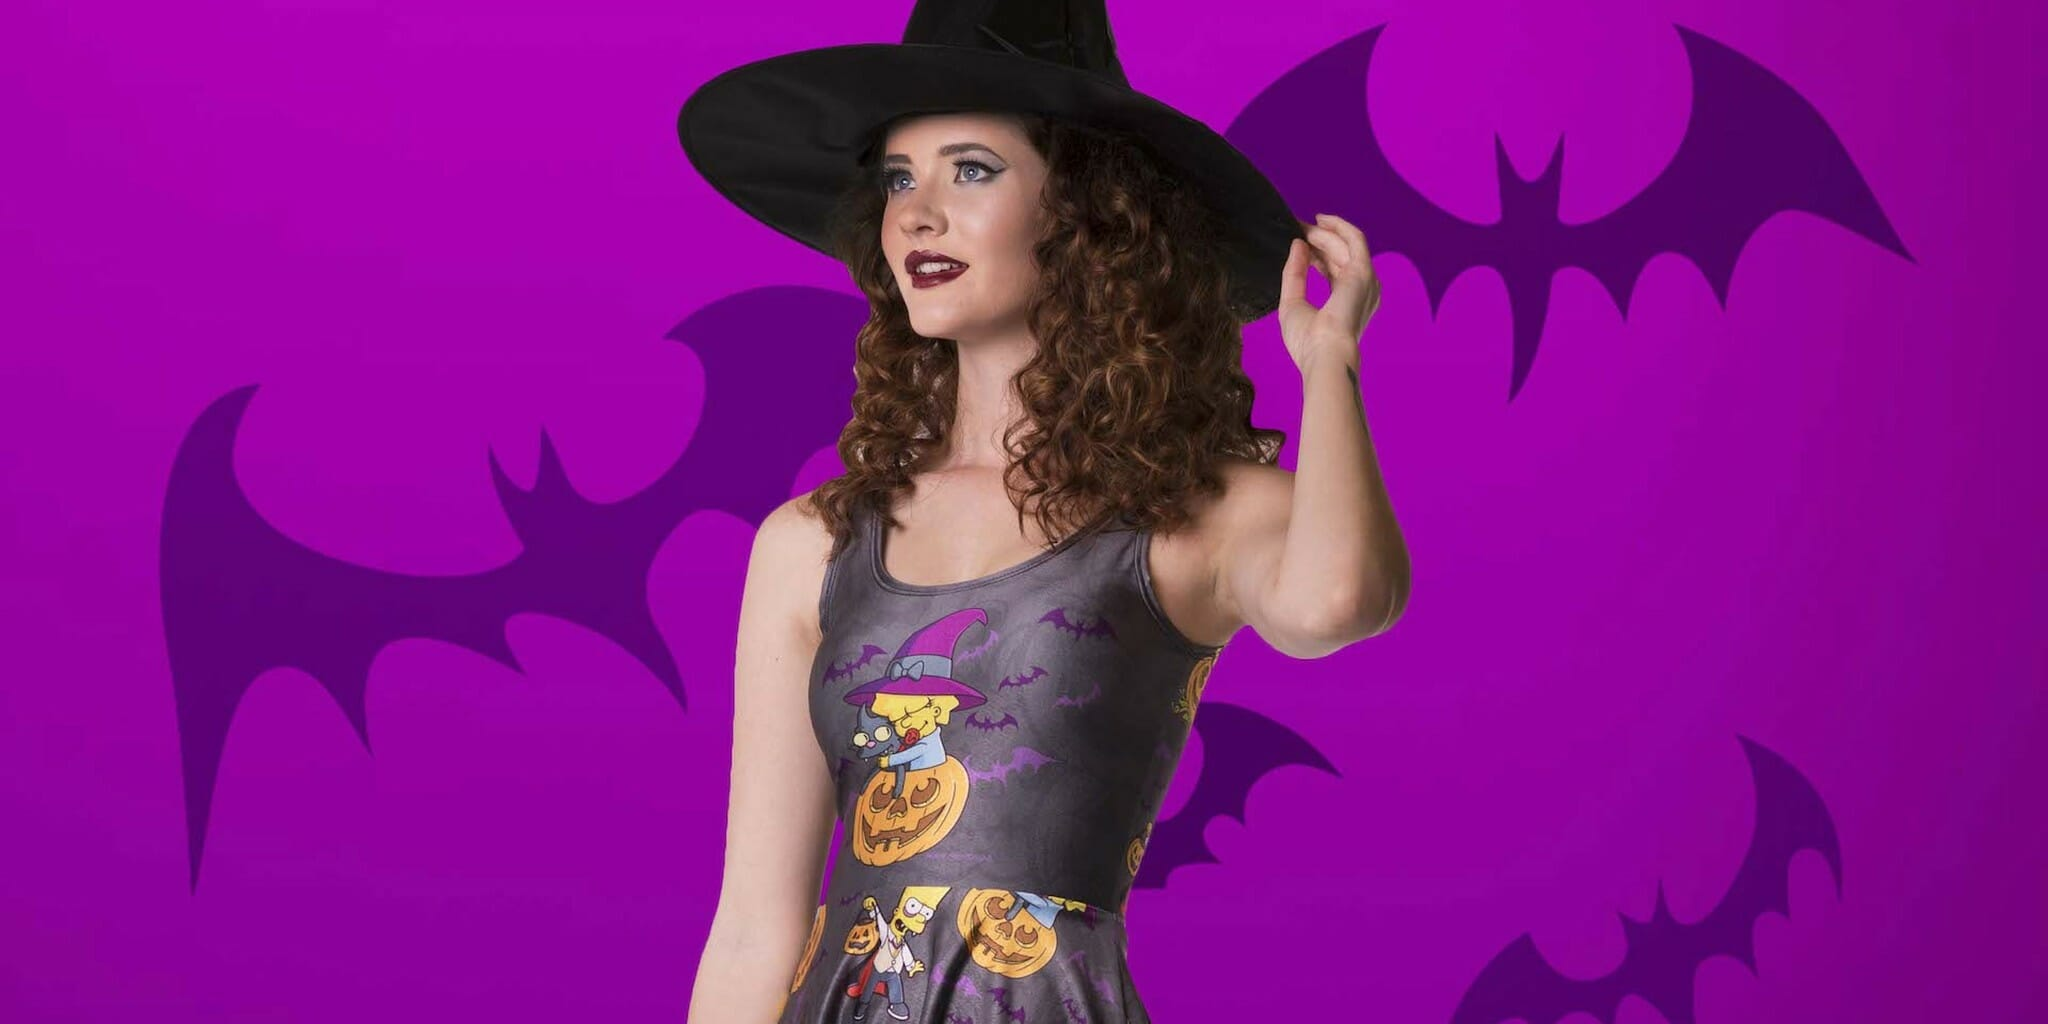 024948ec36 Simpsons Treehouse of Horror dress. This is just the first of several Living  Dead Clothing ...